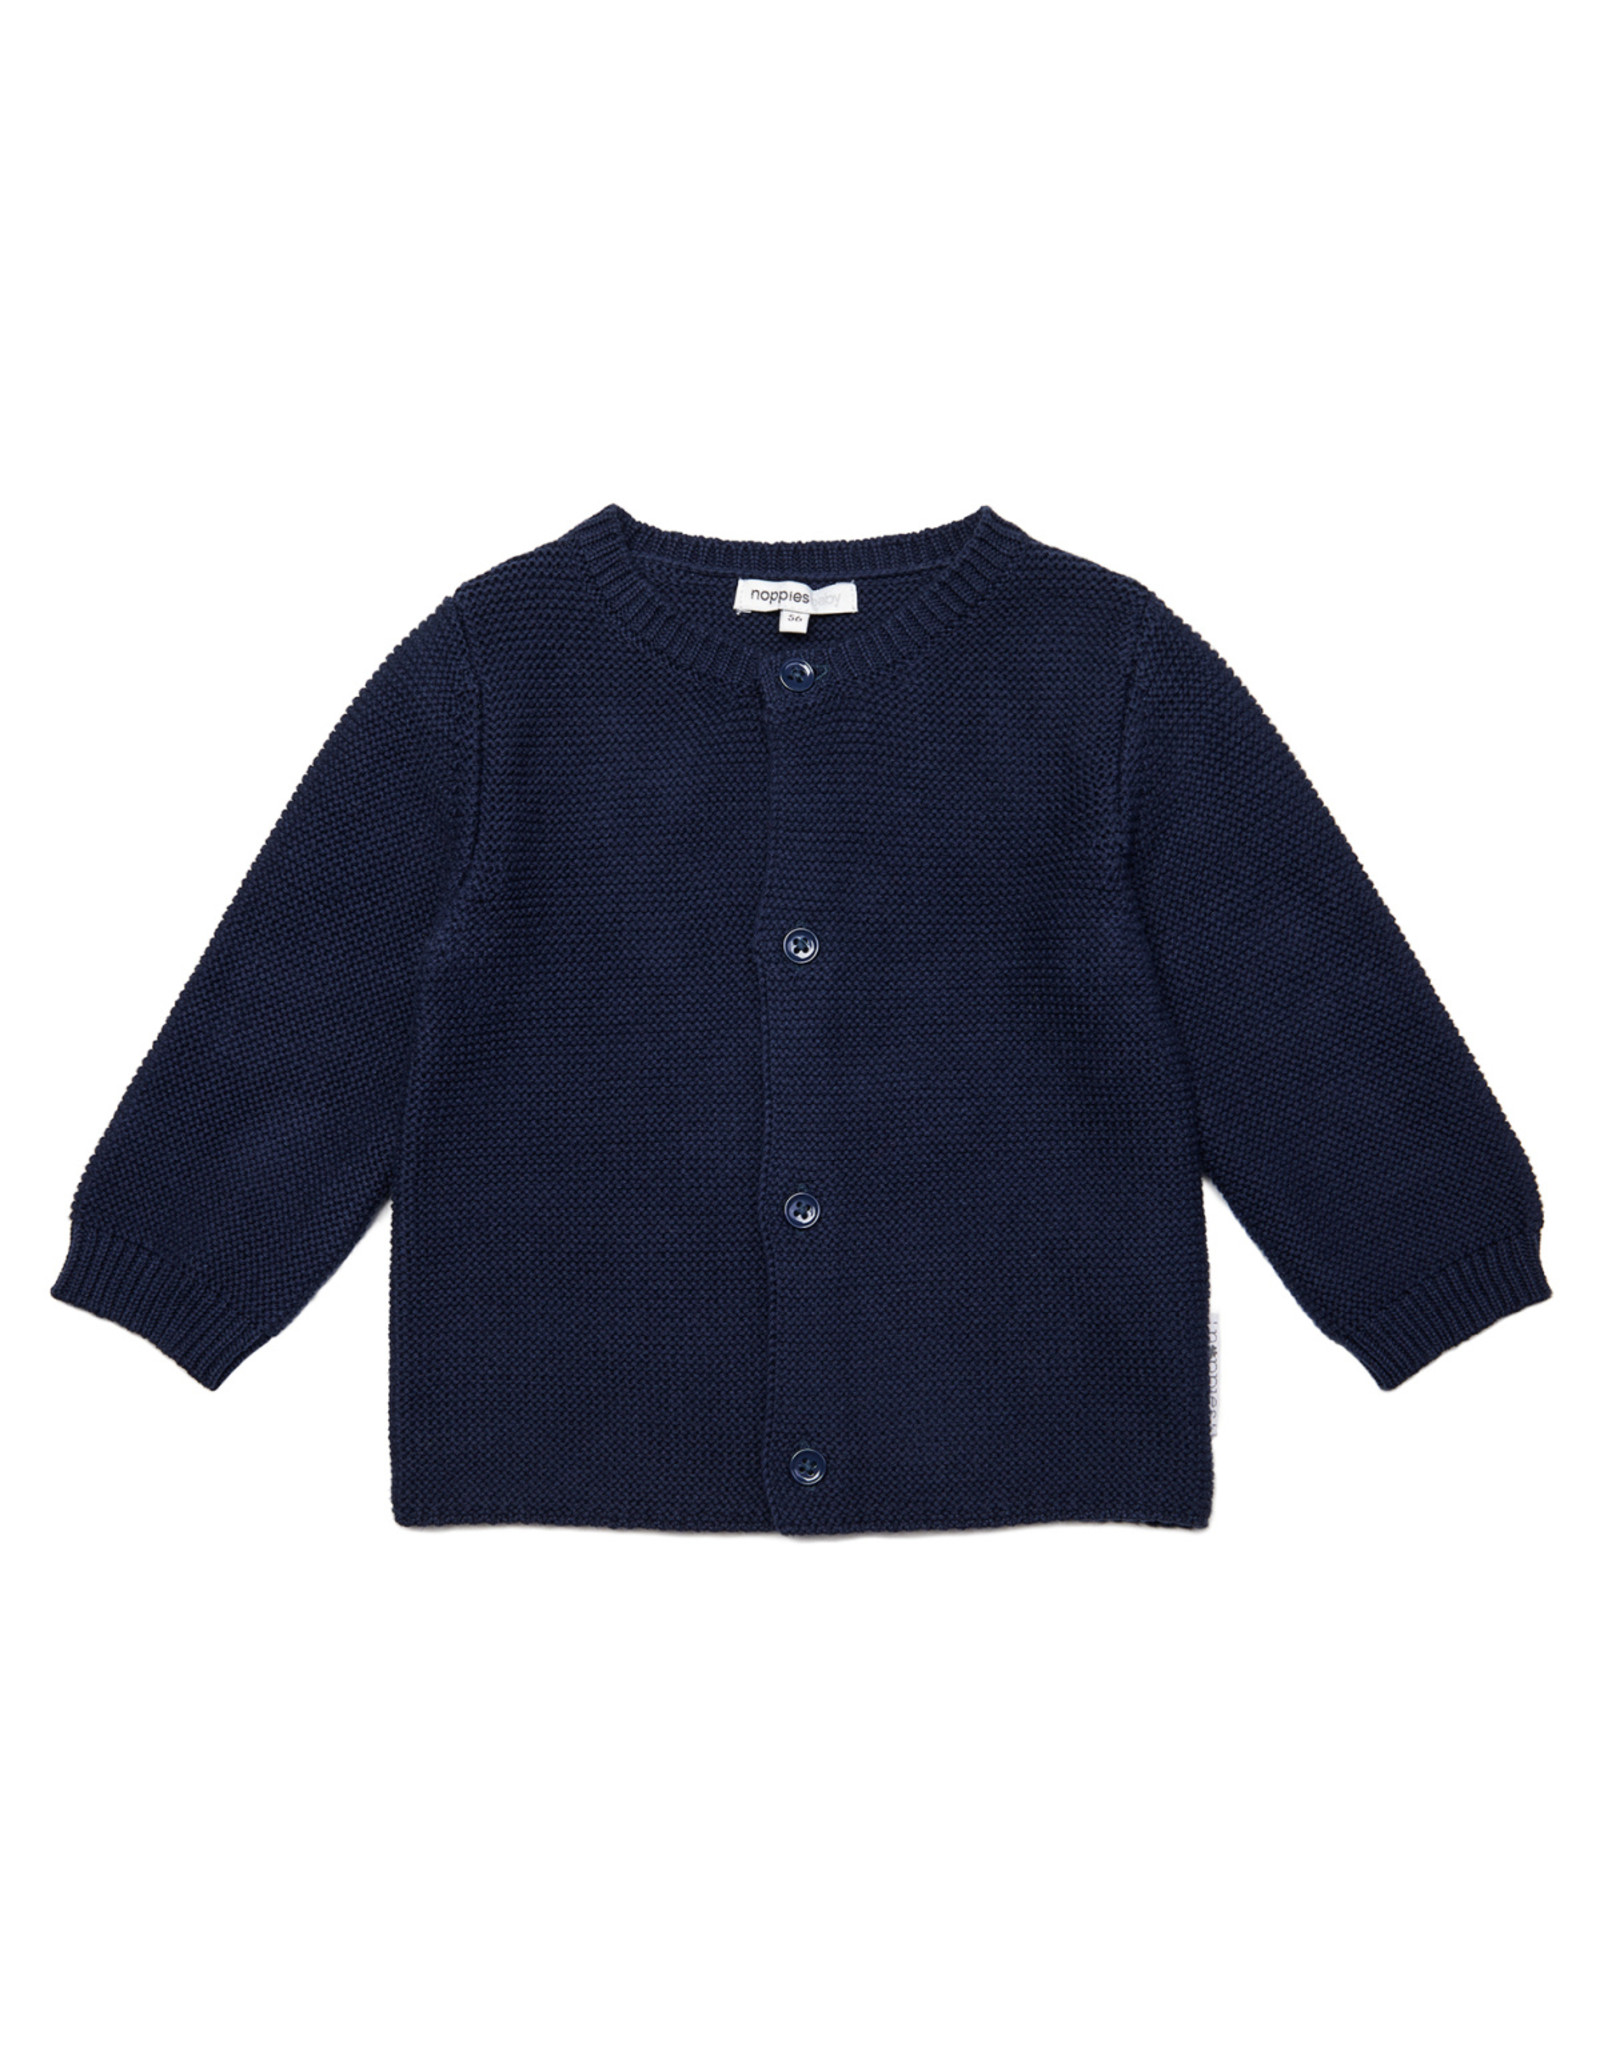 Noppies Noppies B Cardigan knit longsleeve Jos Navy